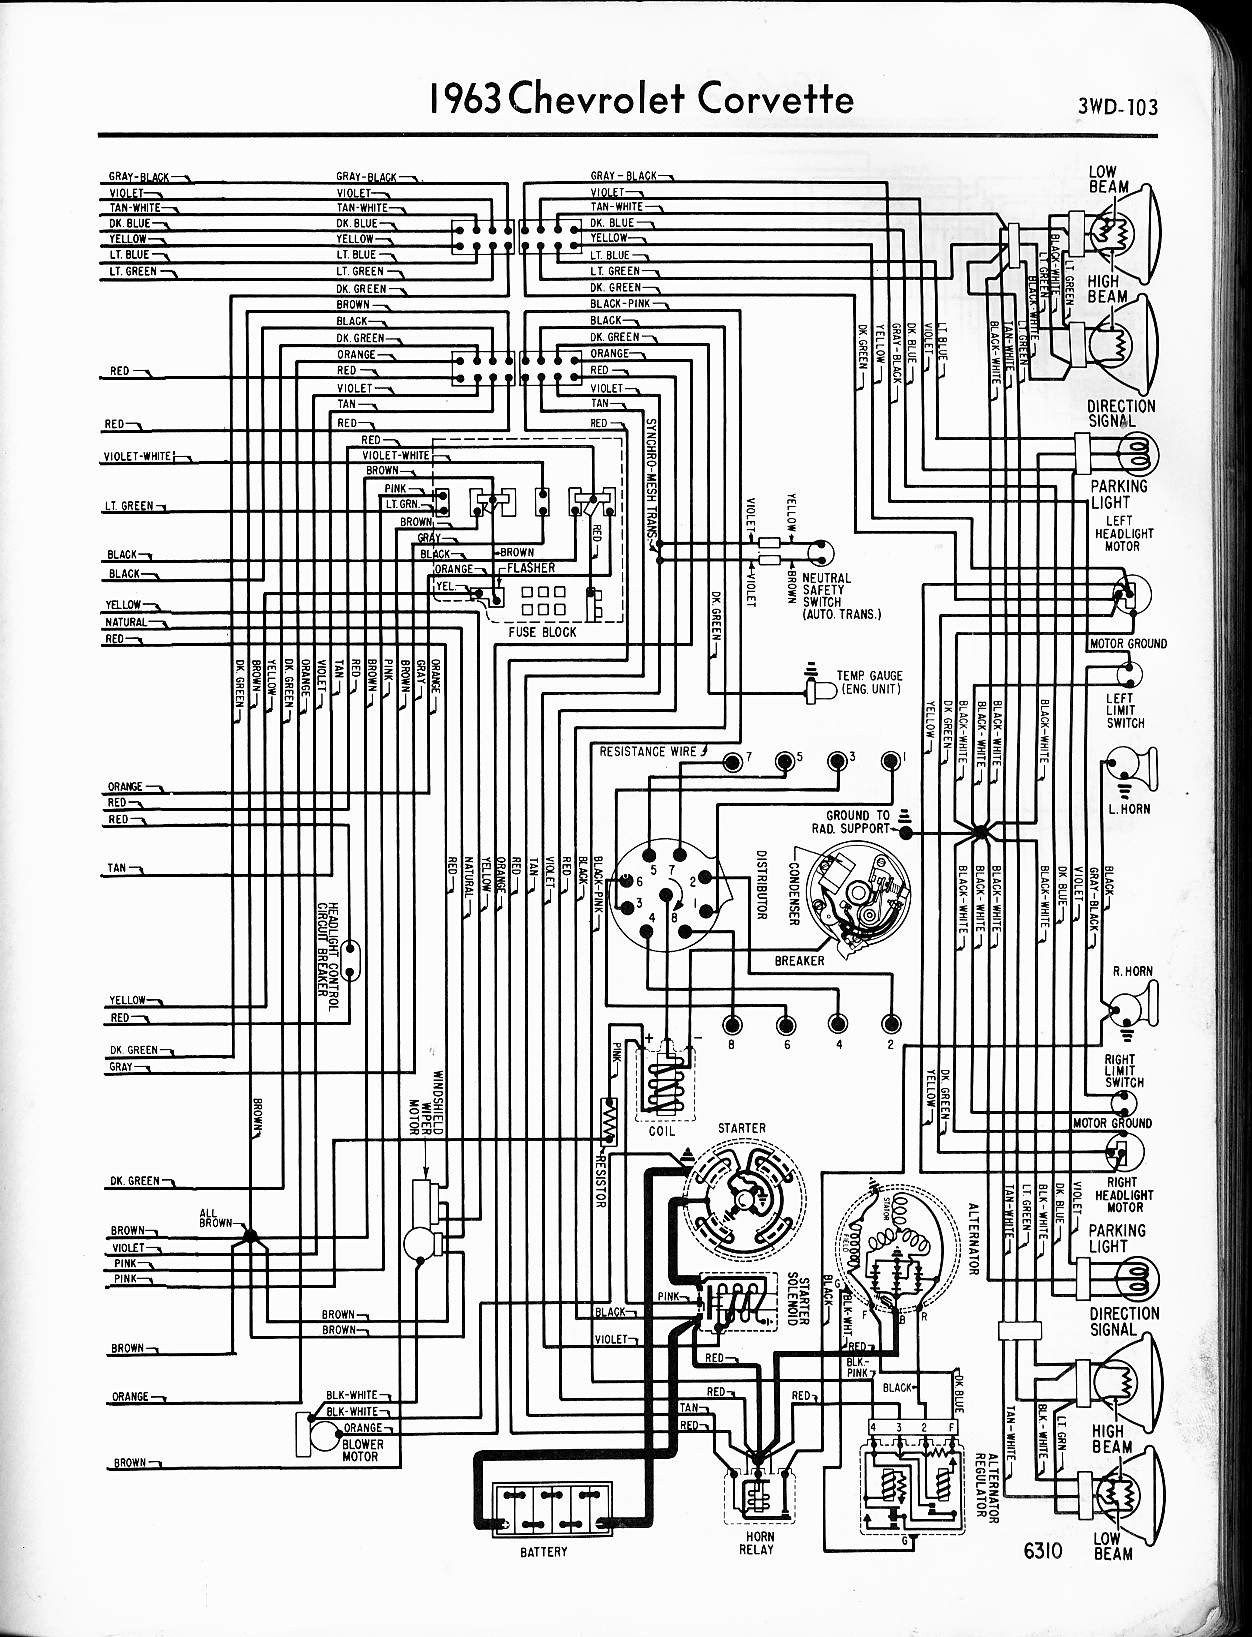 65 Corvette Dash Wiring Diagram - Wiring Diagram Networks